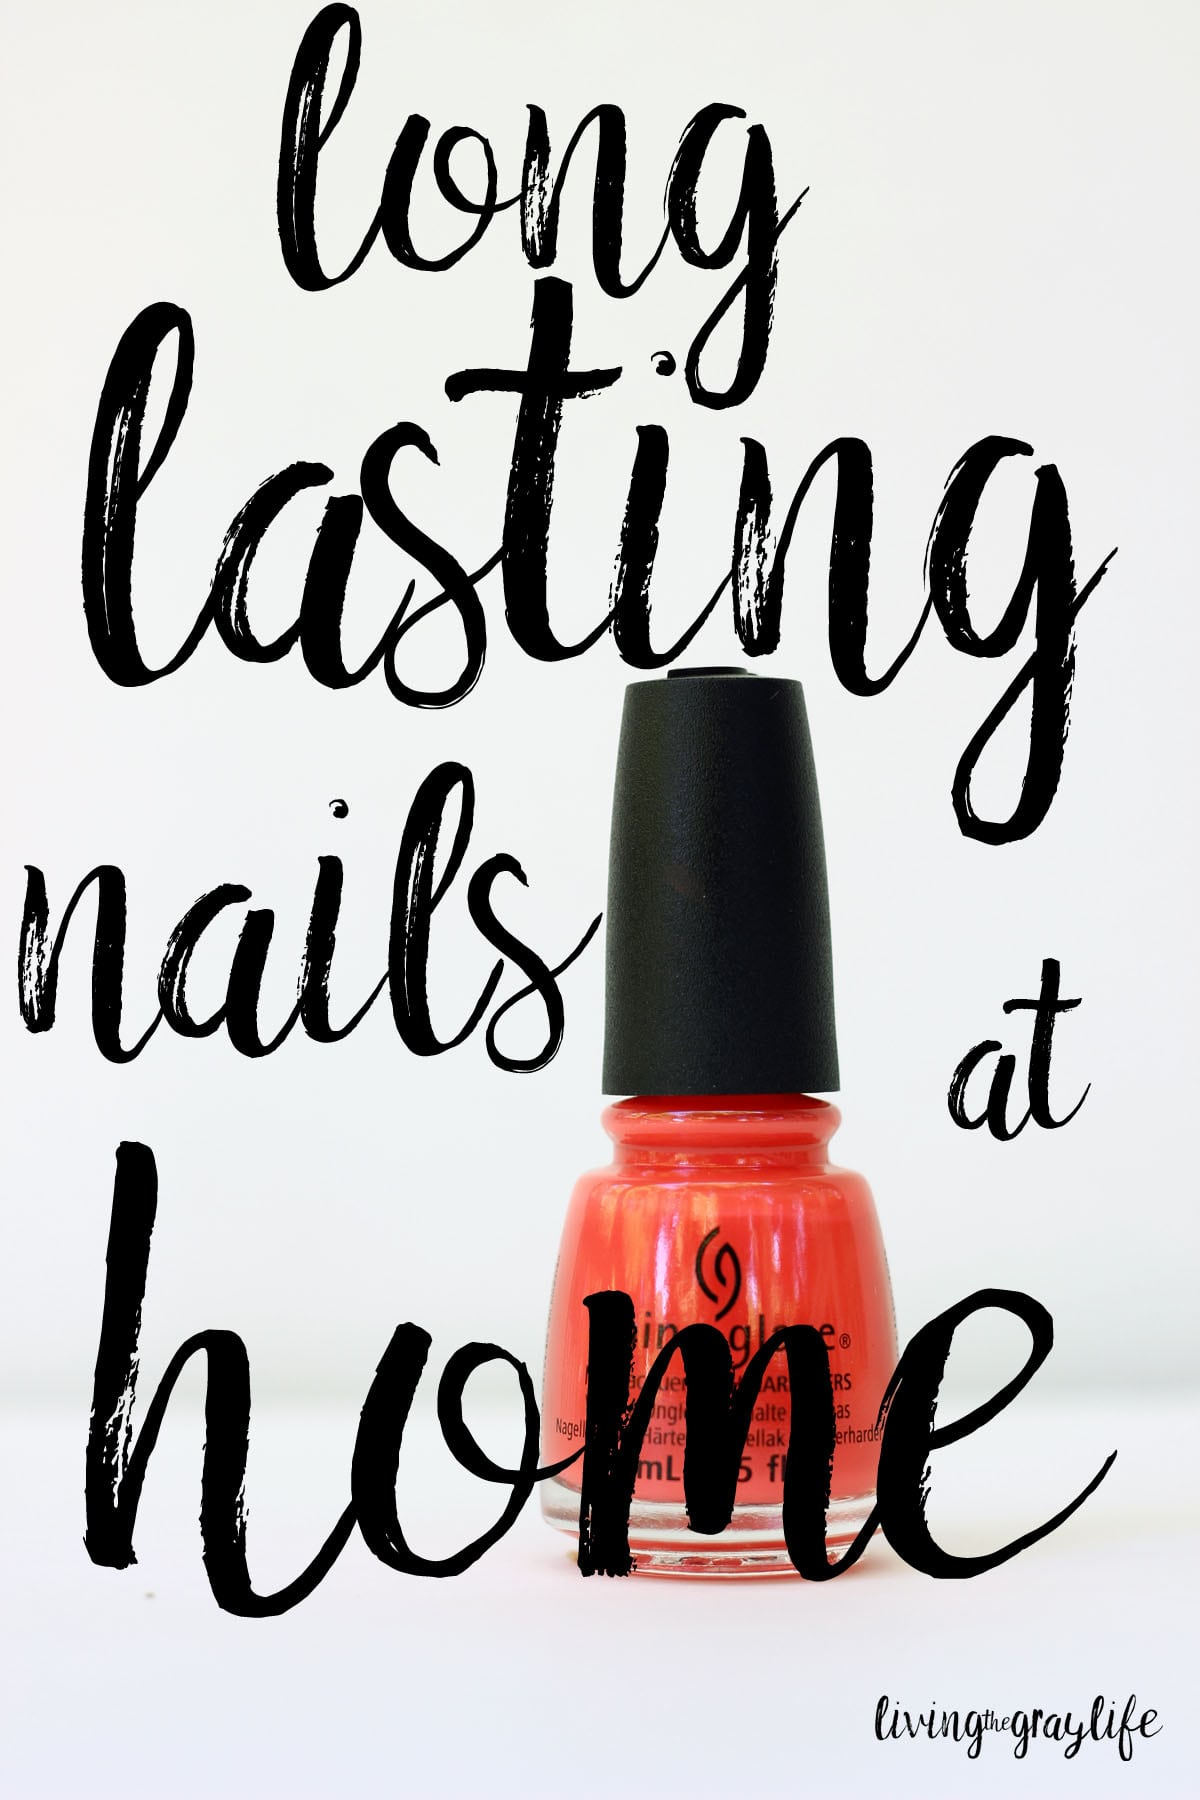 Want long lasting nails without the salon price? Find out how one product will make long lasting nails at home a piece of cake!